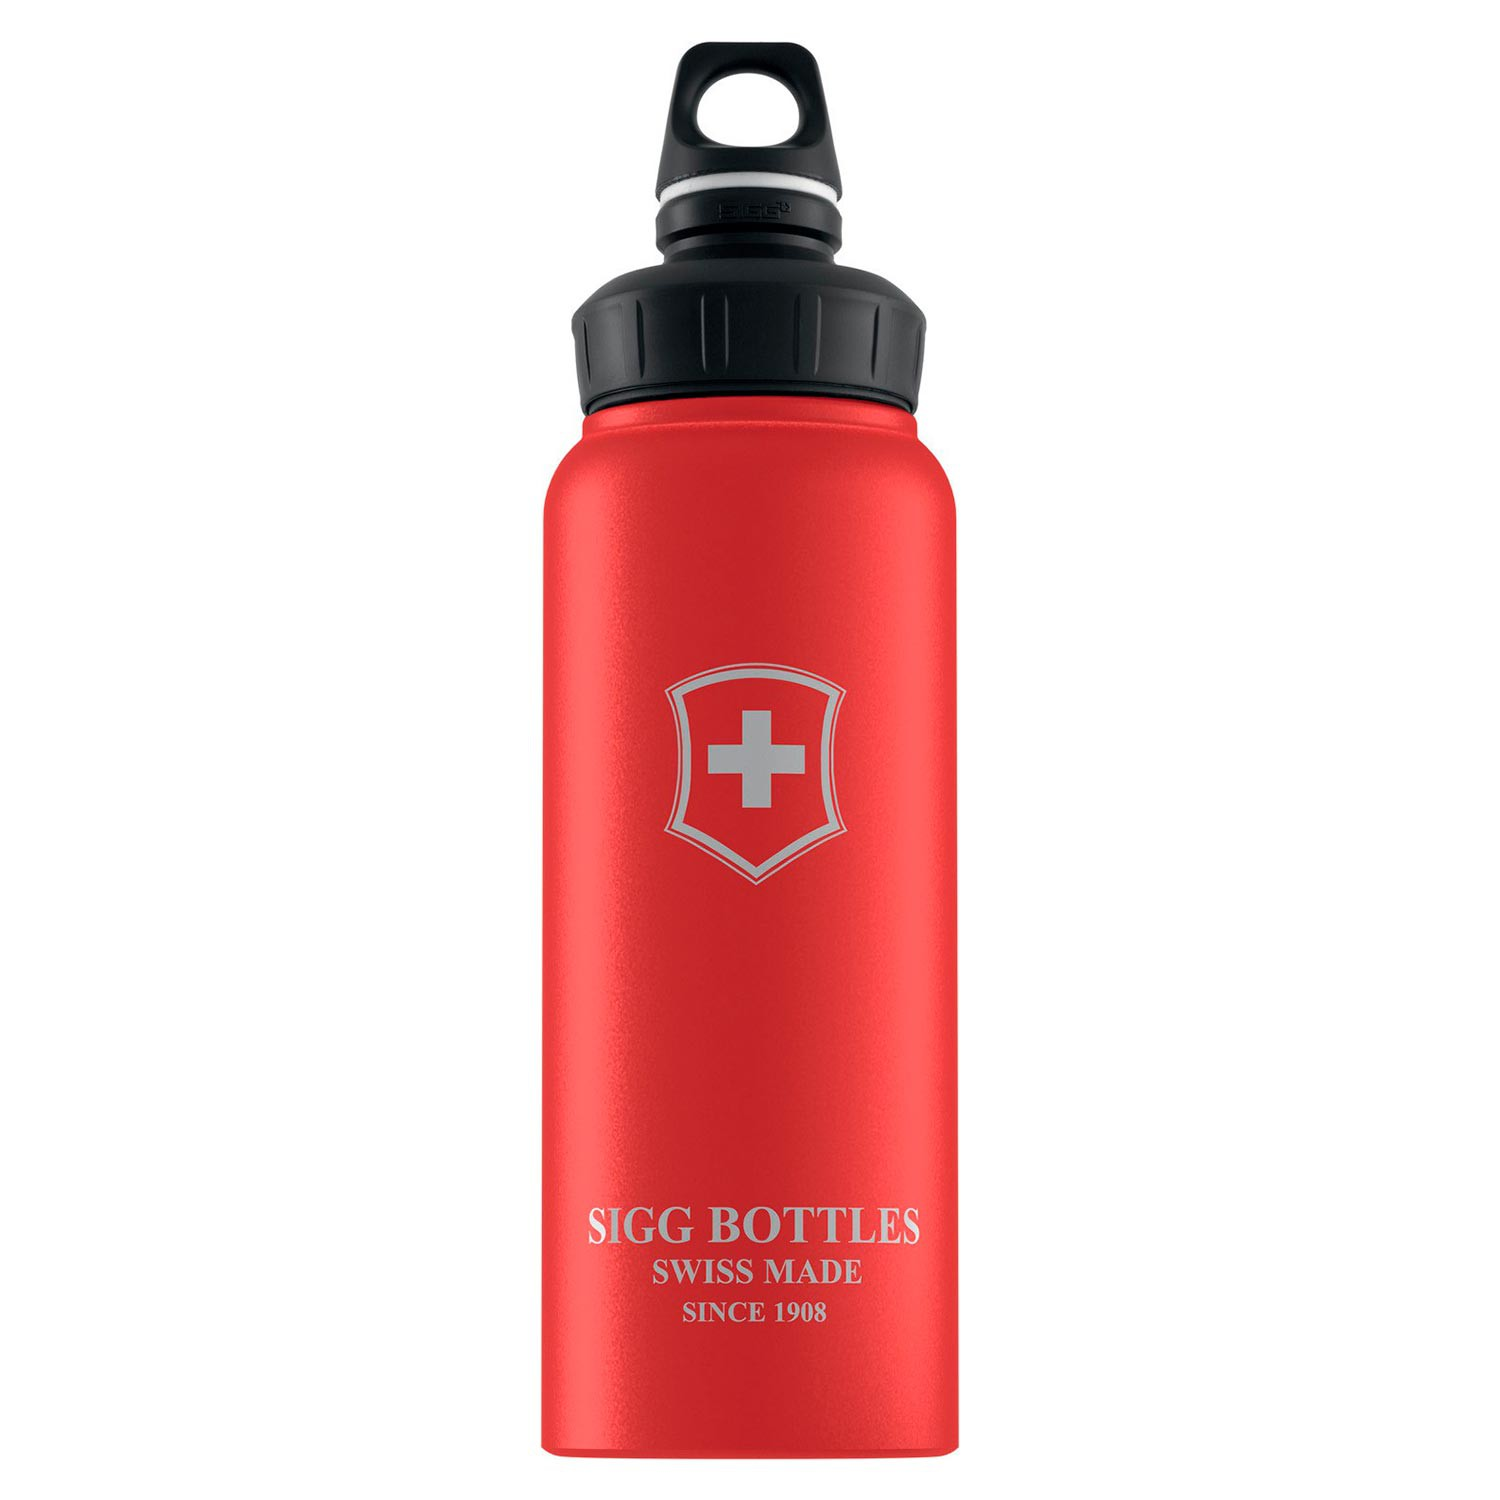 Termoska Sigg Wmb Swiss Emblem red touch 1l